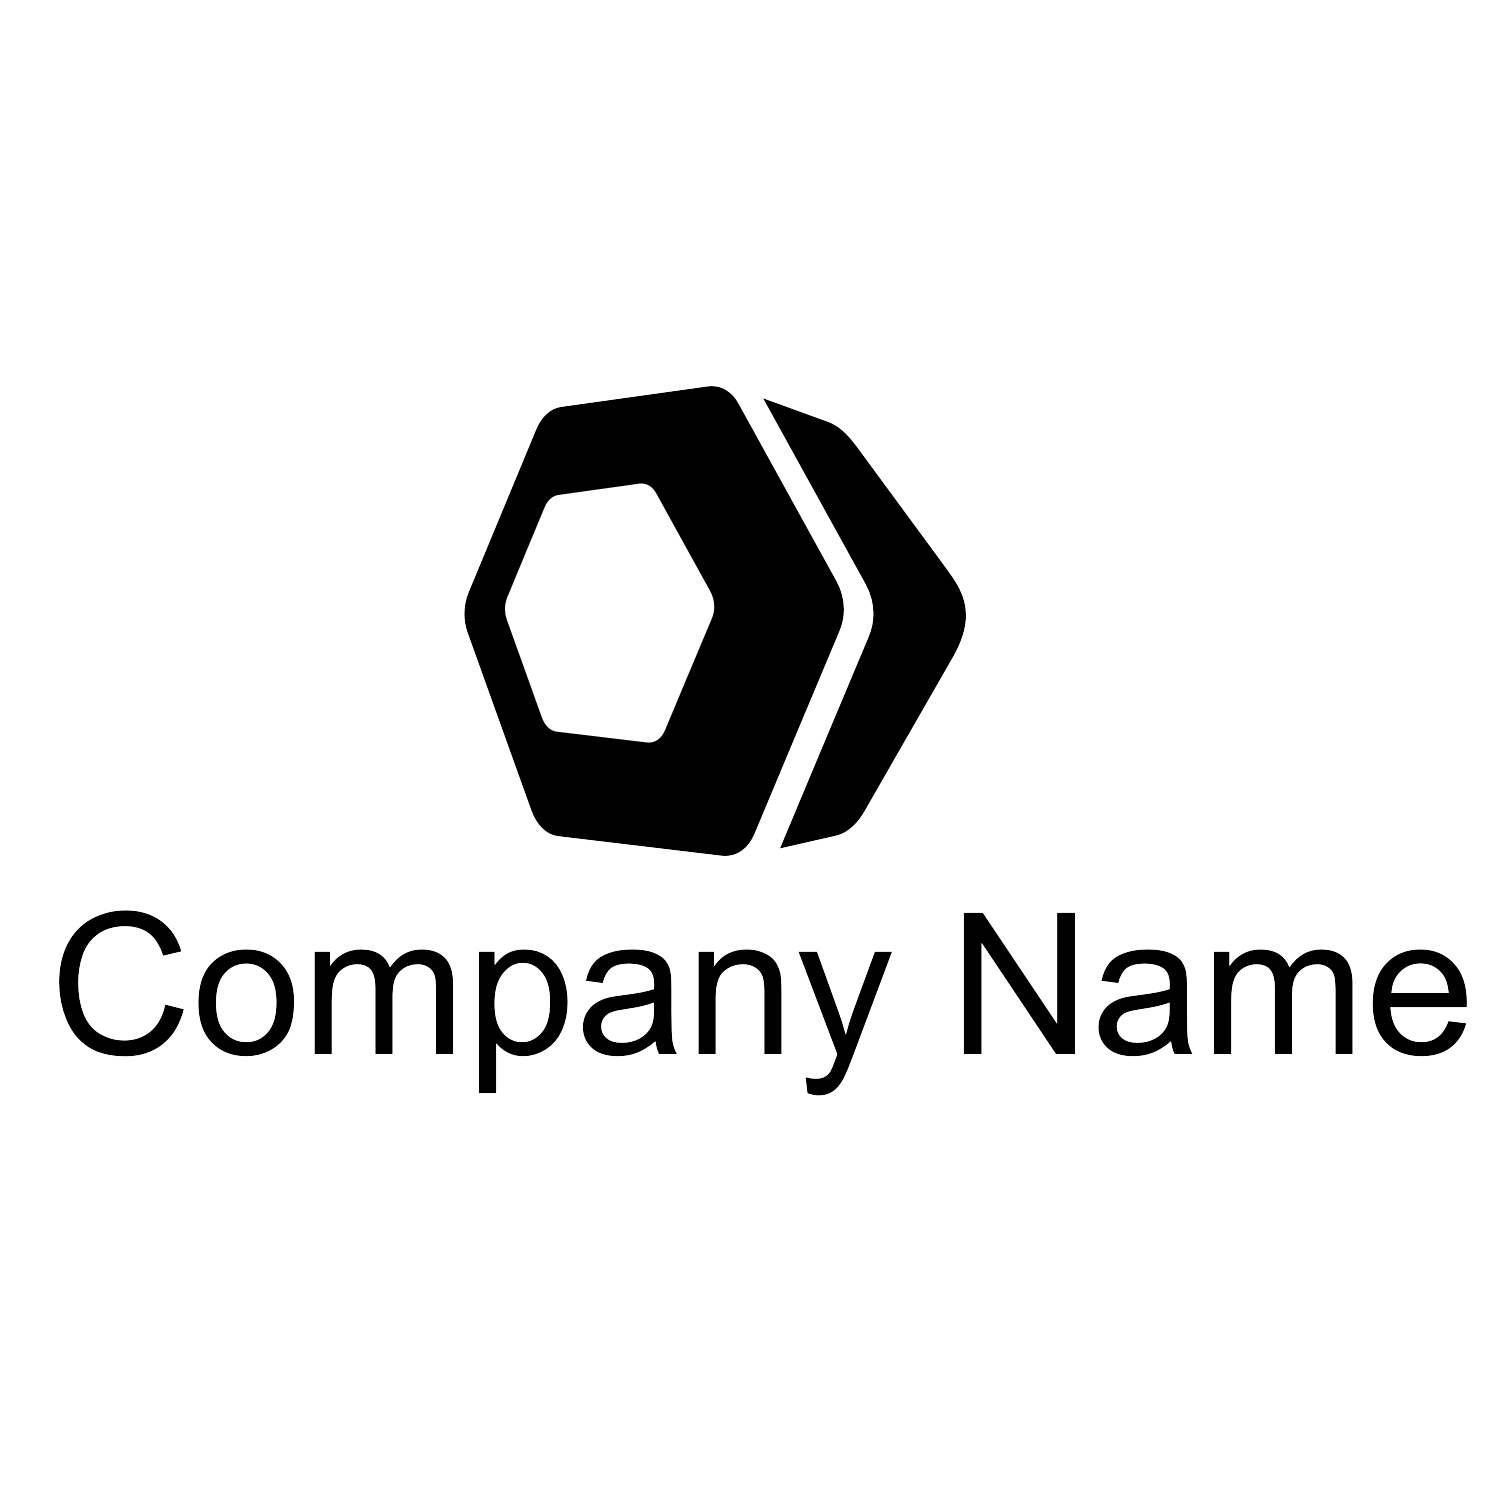 Hexagon logo vector